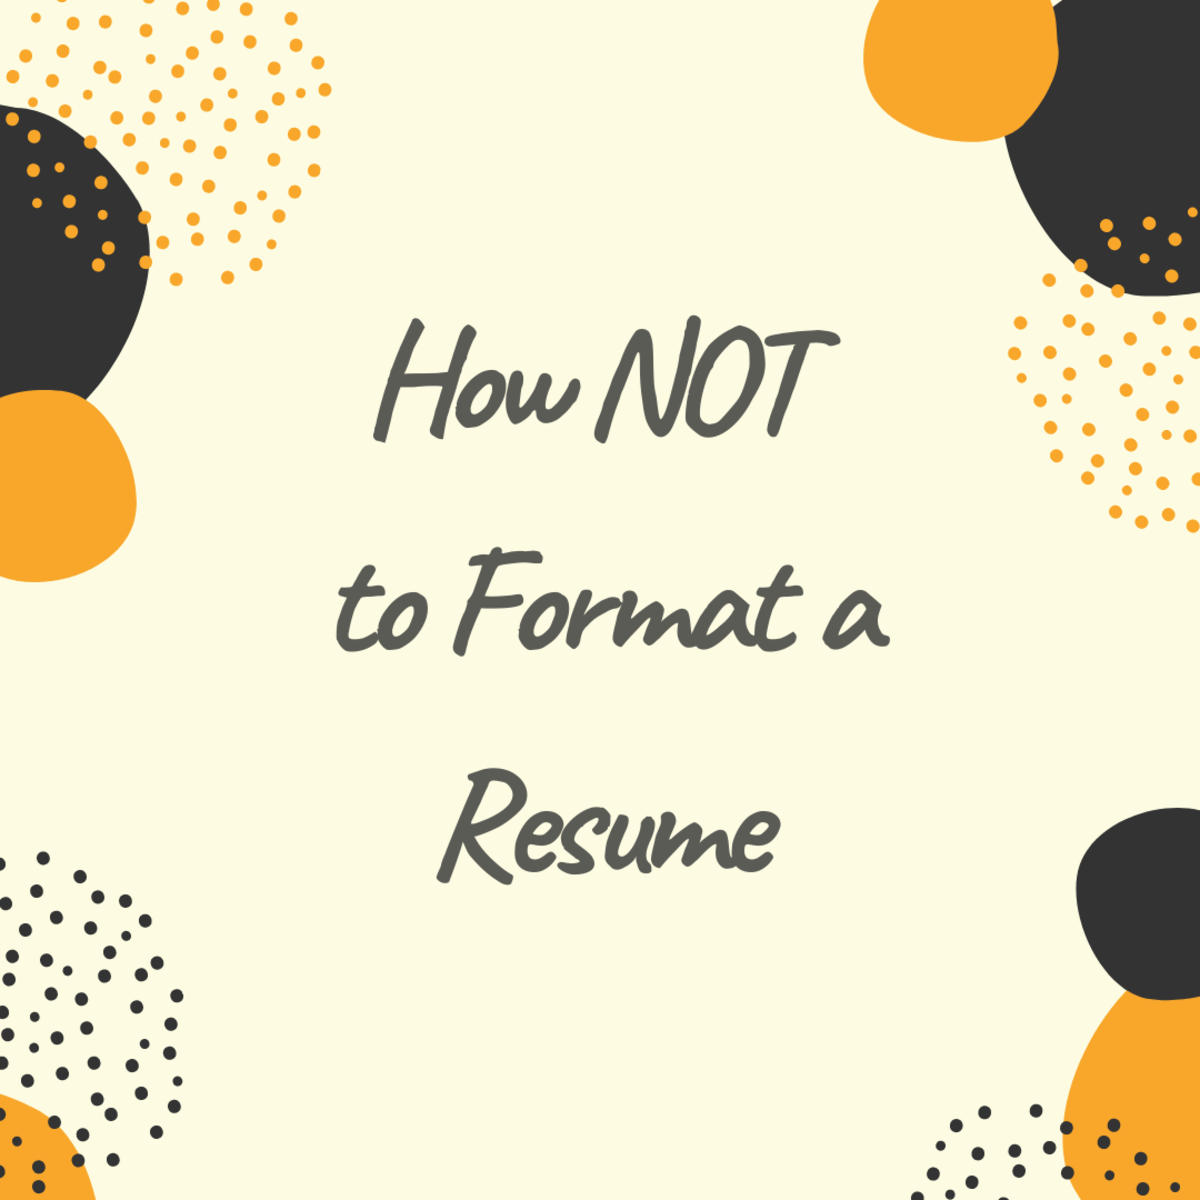 Common Resume Formatting Mistakes and How to Fix Them